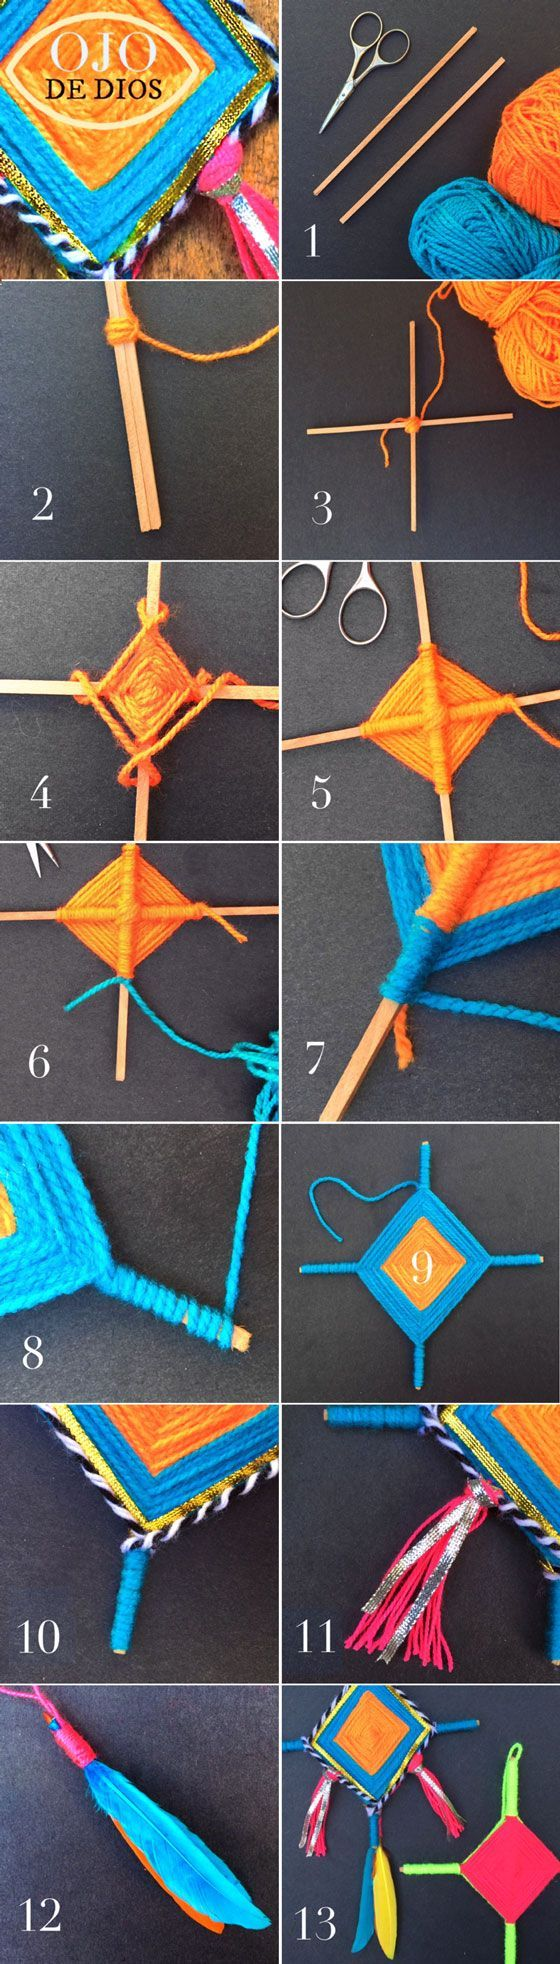 How to make Ojos de Dios